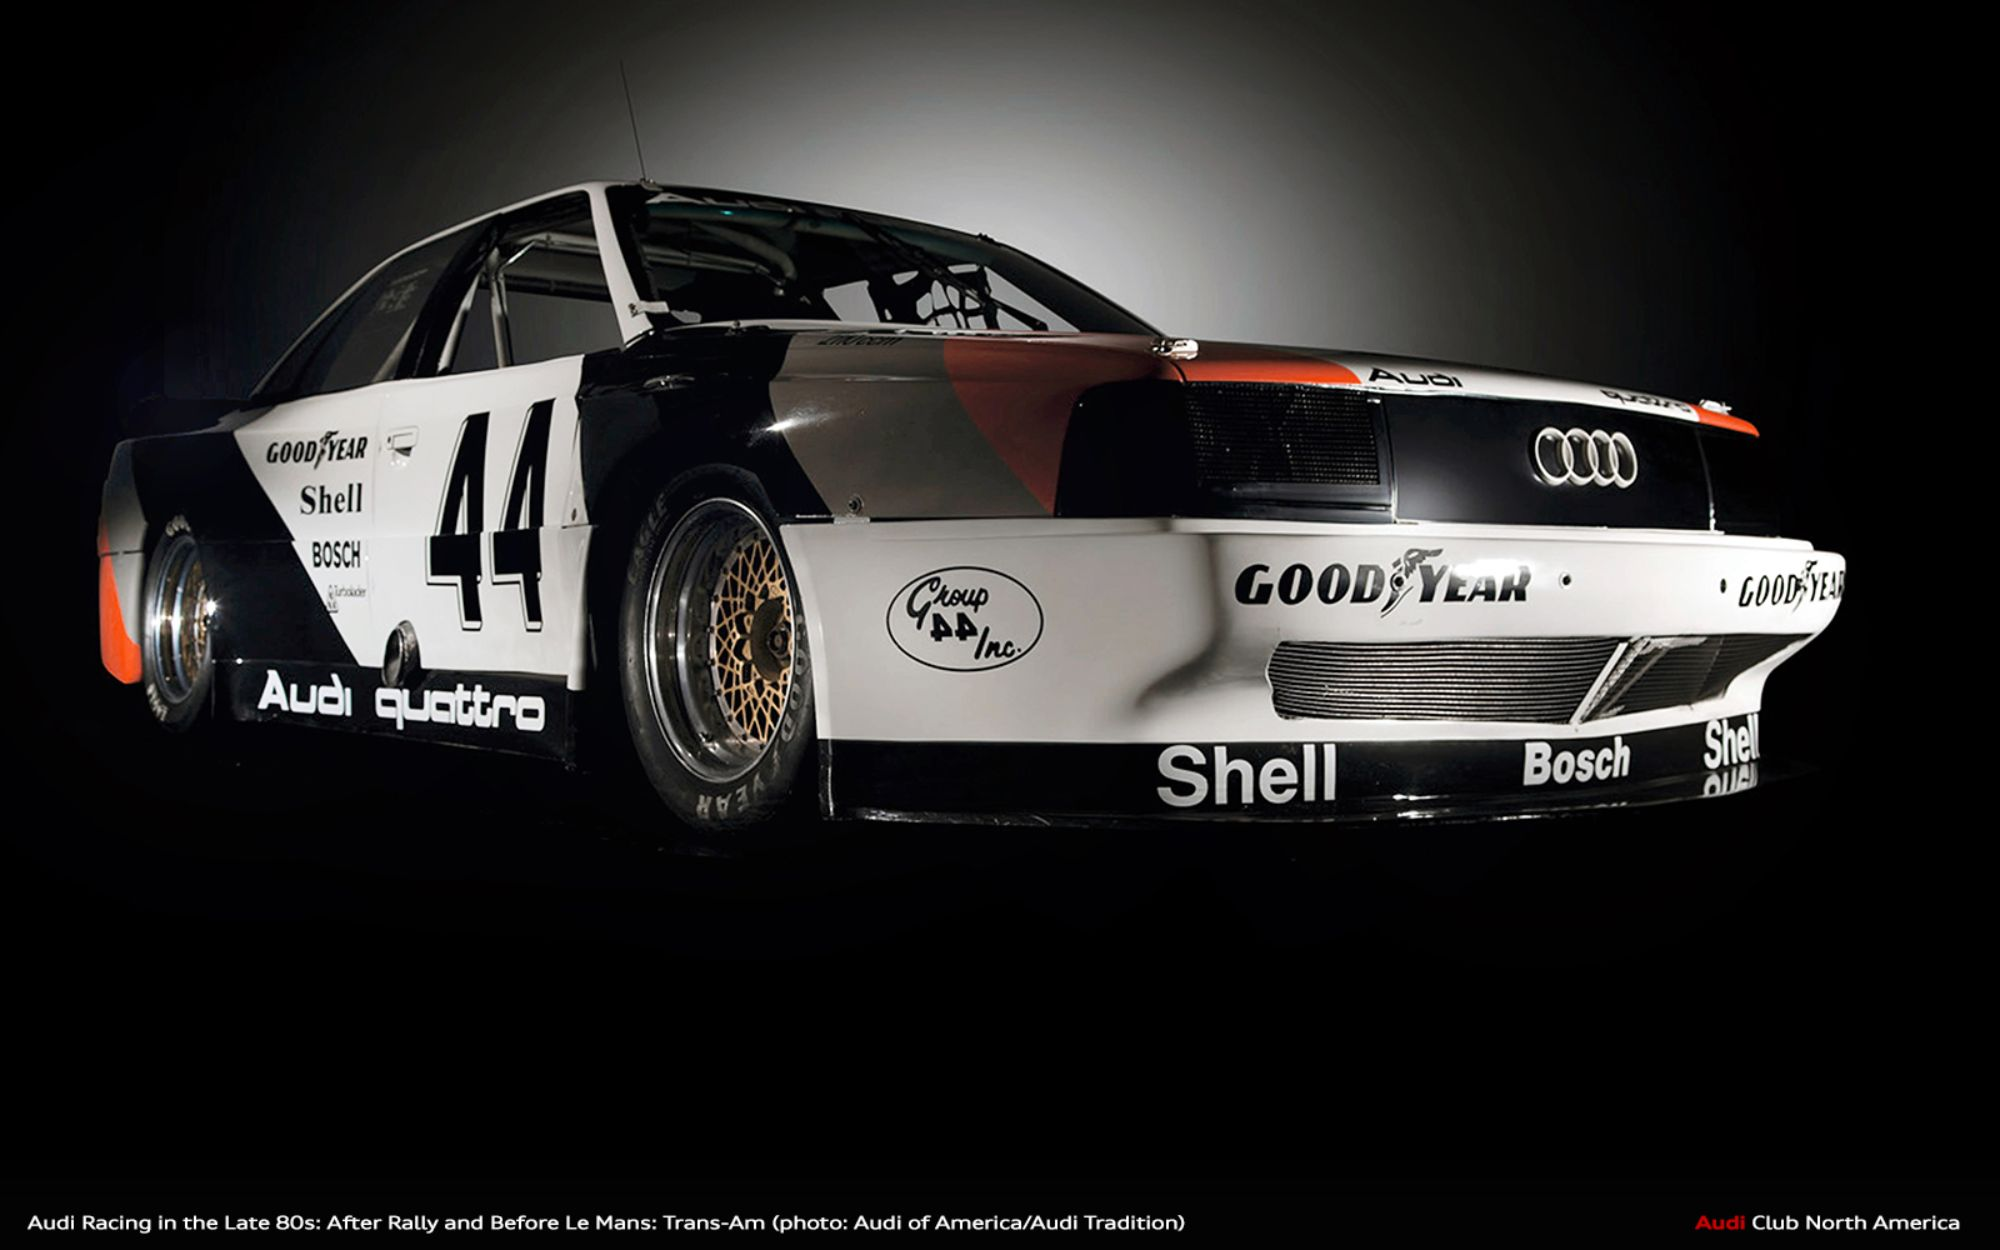 Audi Racing in the Late 80s: After Rally and Before Le Mans